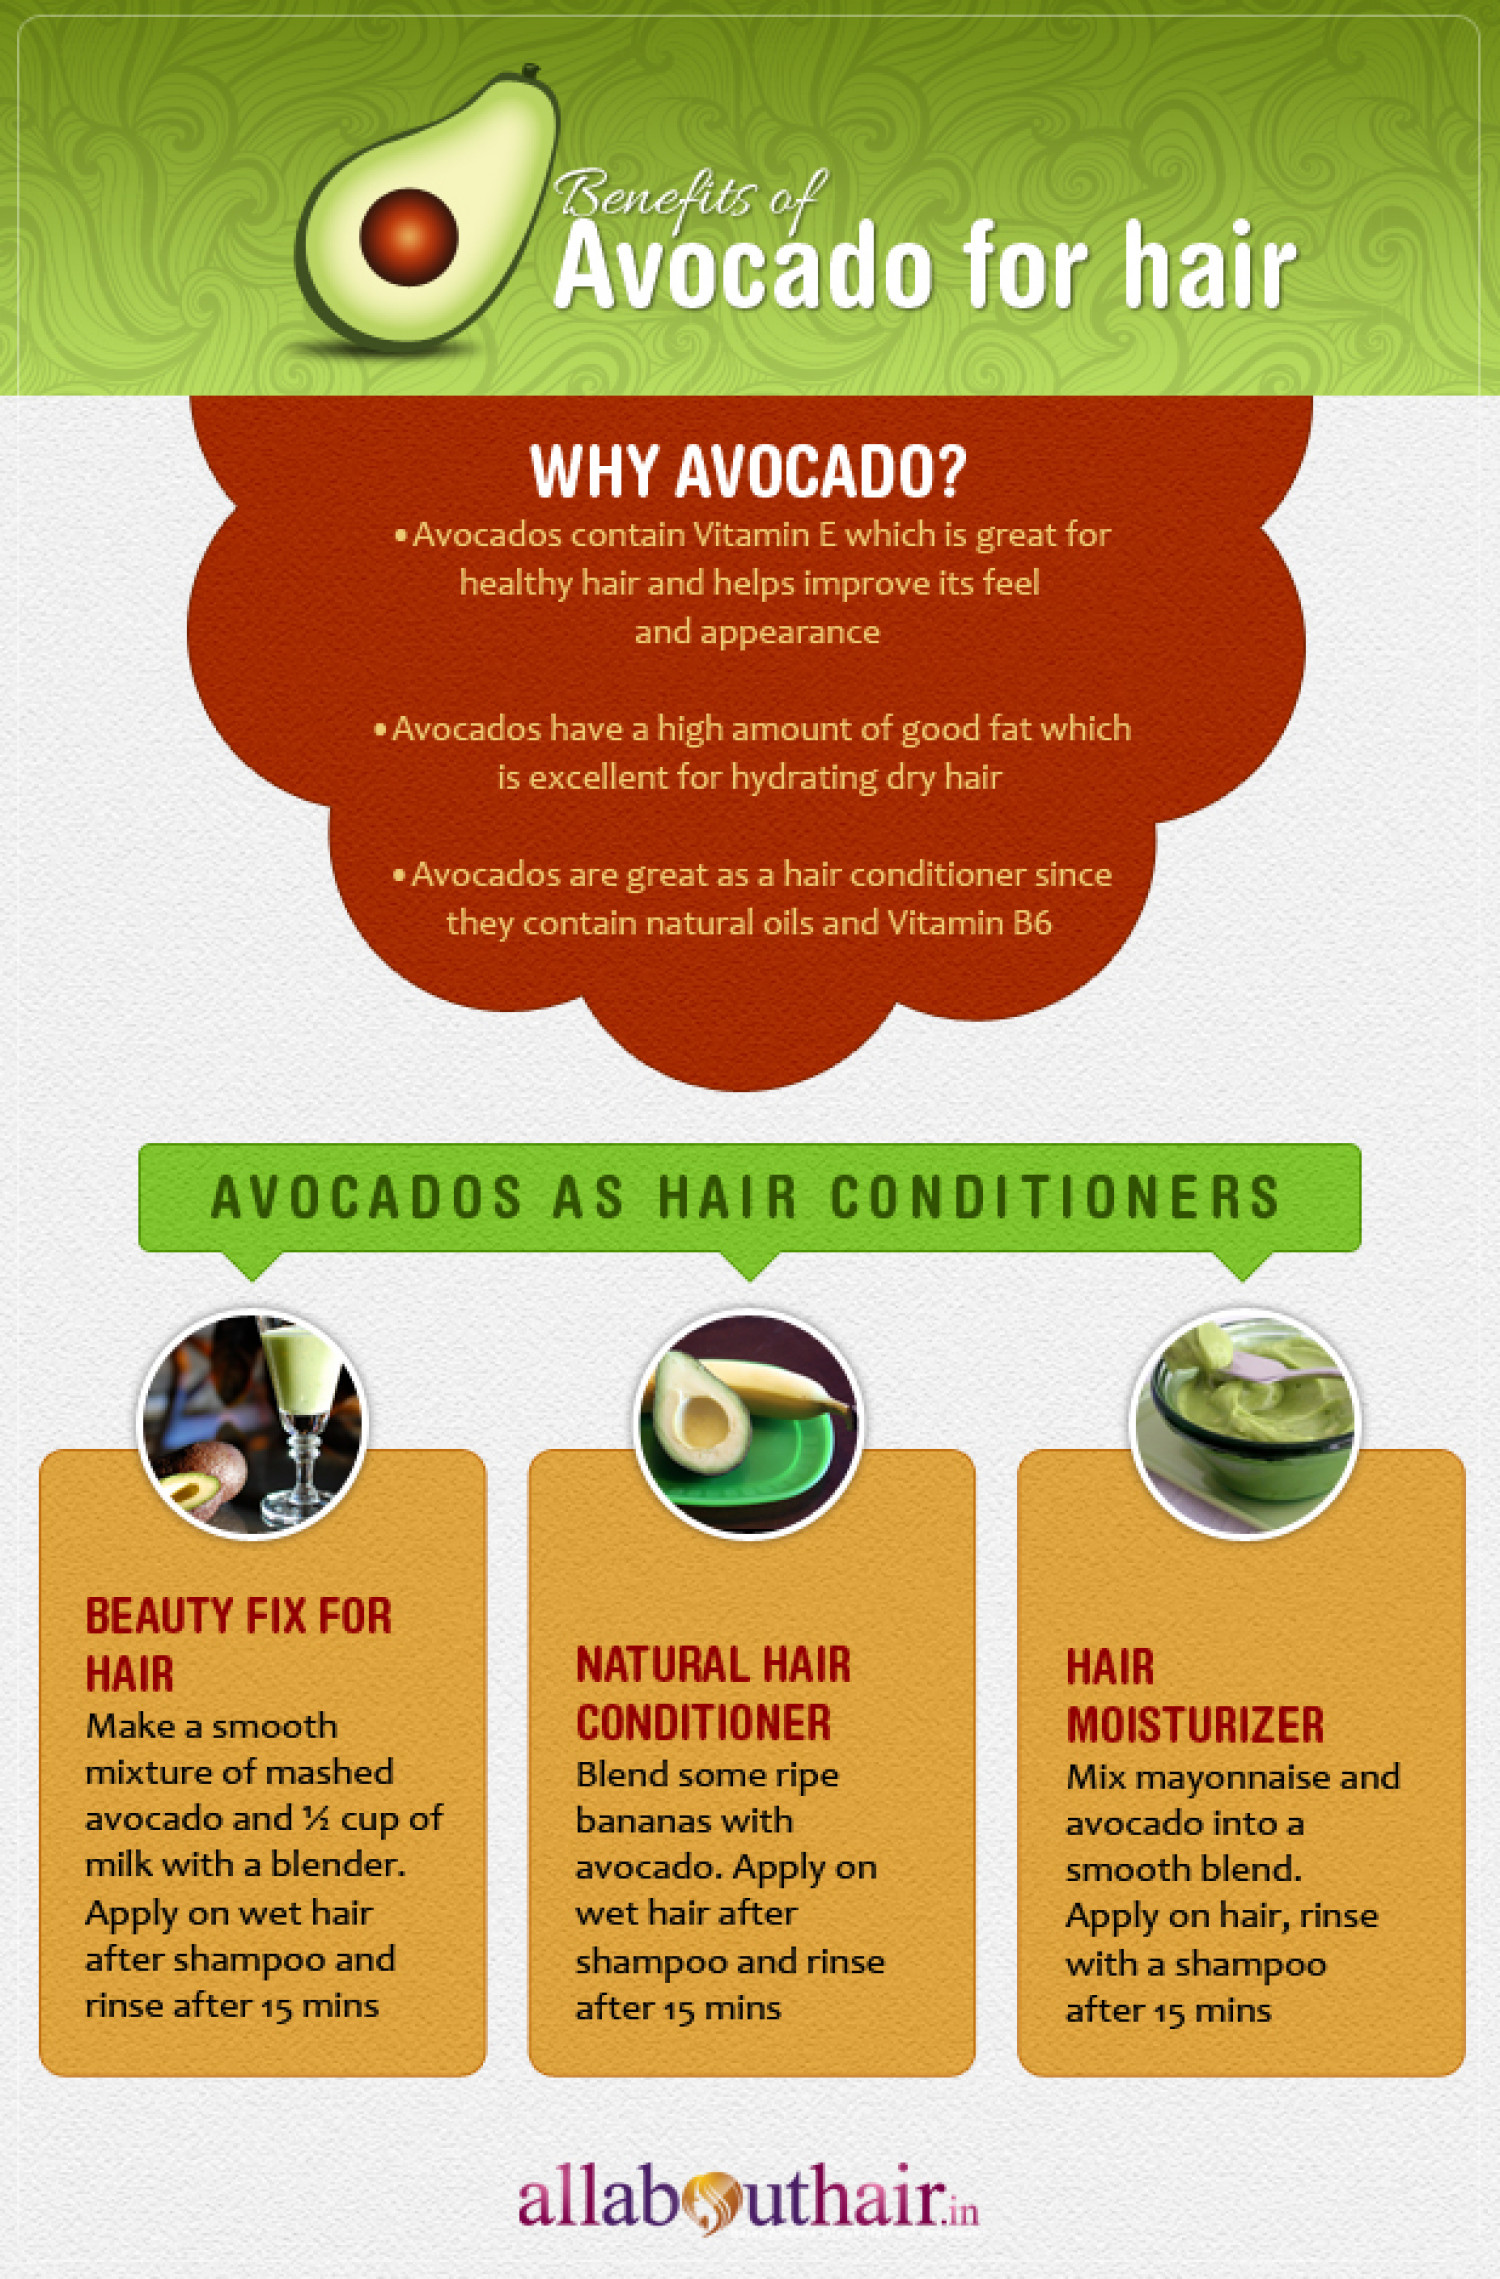 Benefits of Avocado for hair Infographic